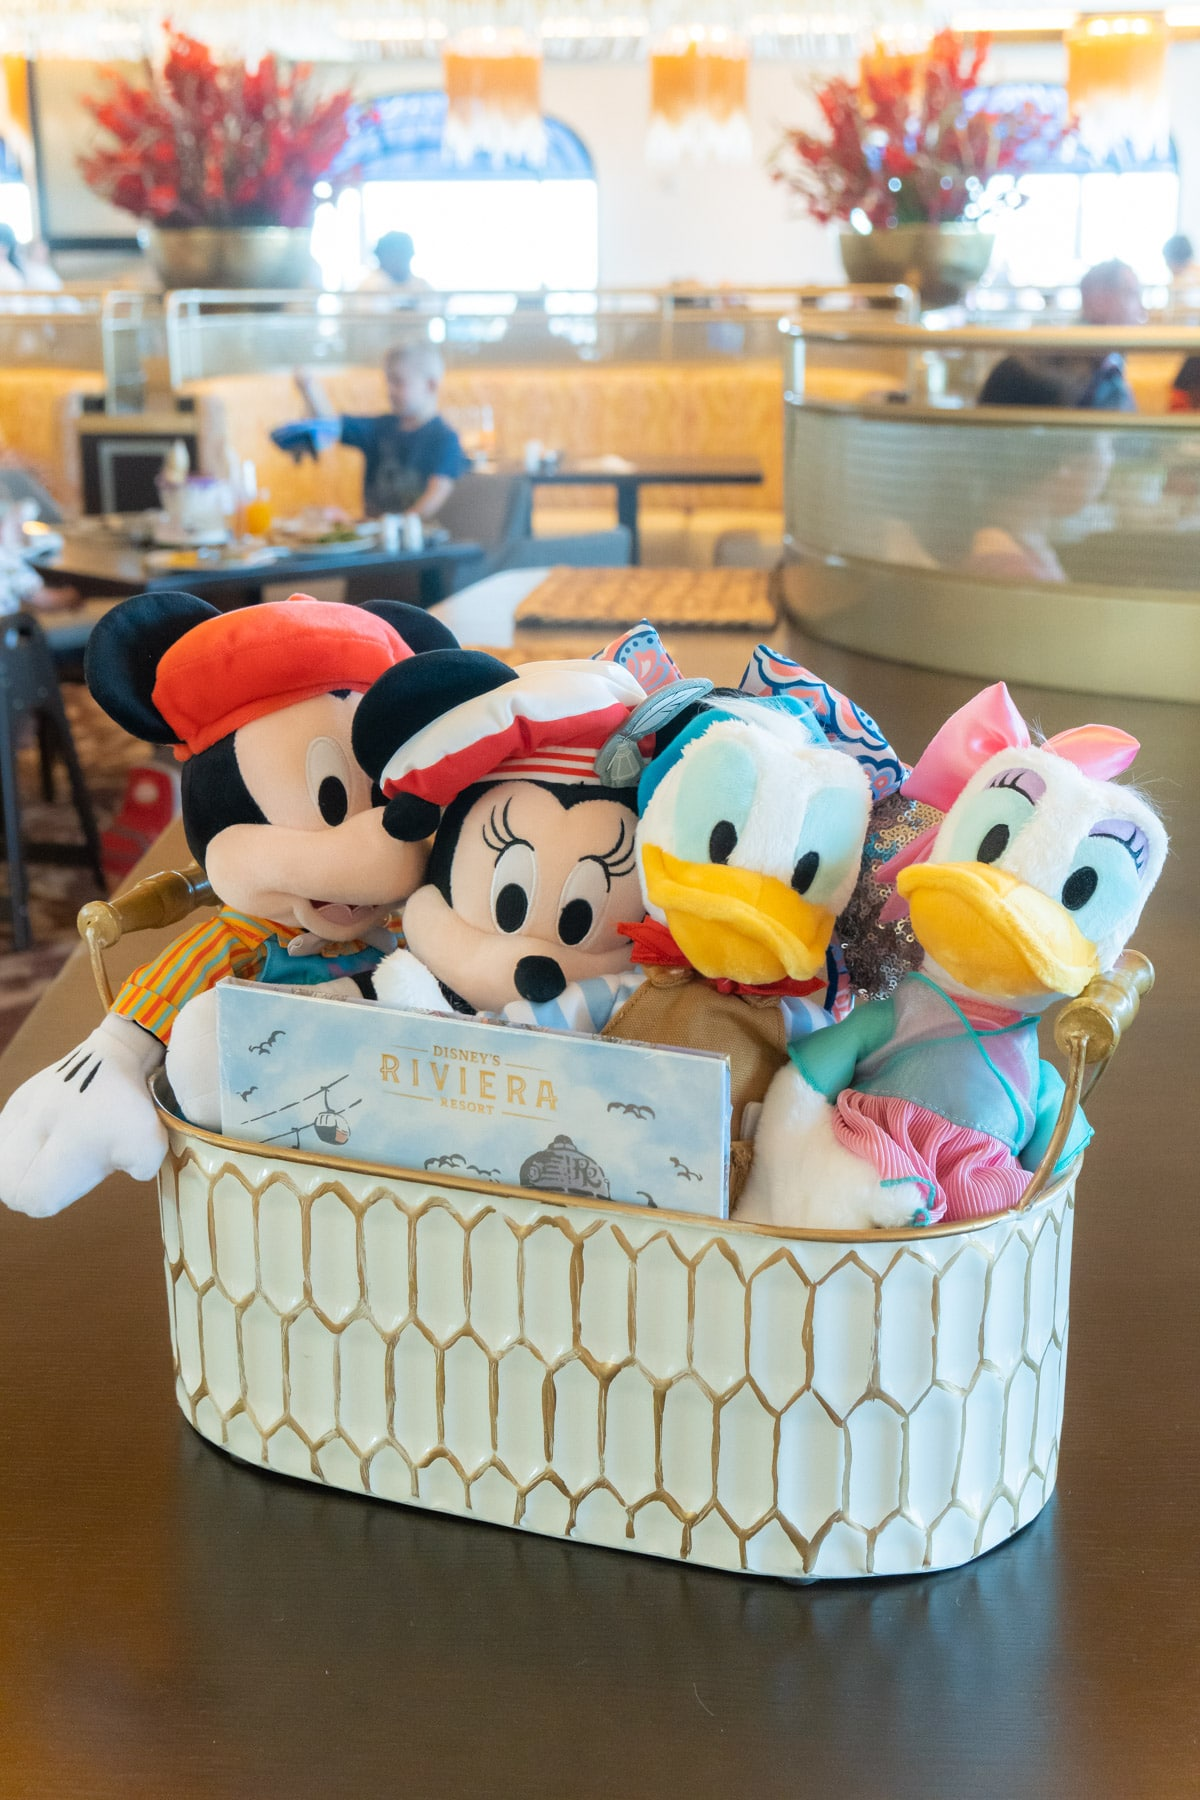 Basket with plush Mickey, Minnie, Daisy, and Donald